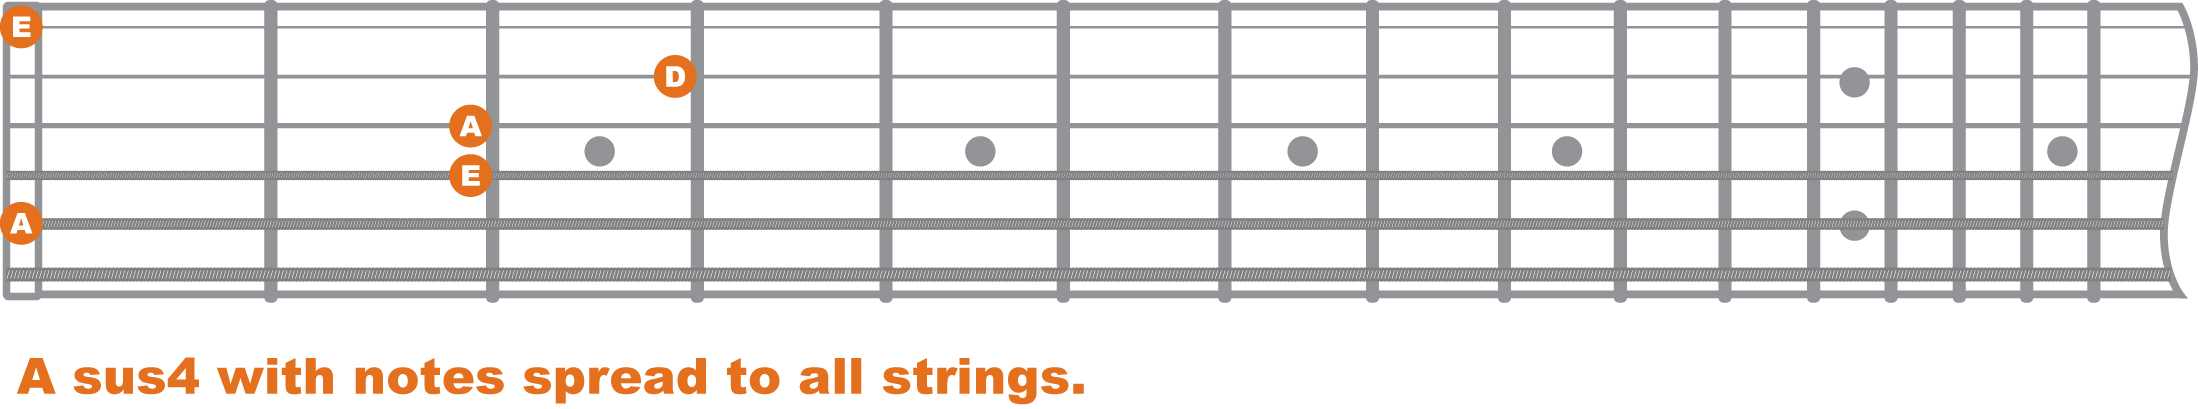 chord theory suspended chords baltimore guitar lessons. Black Bedroom Furniture Sets. Home Design Ideas